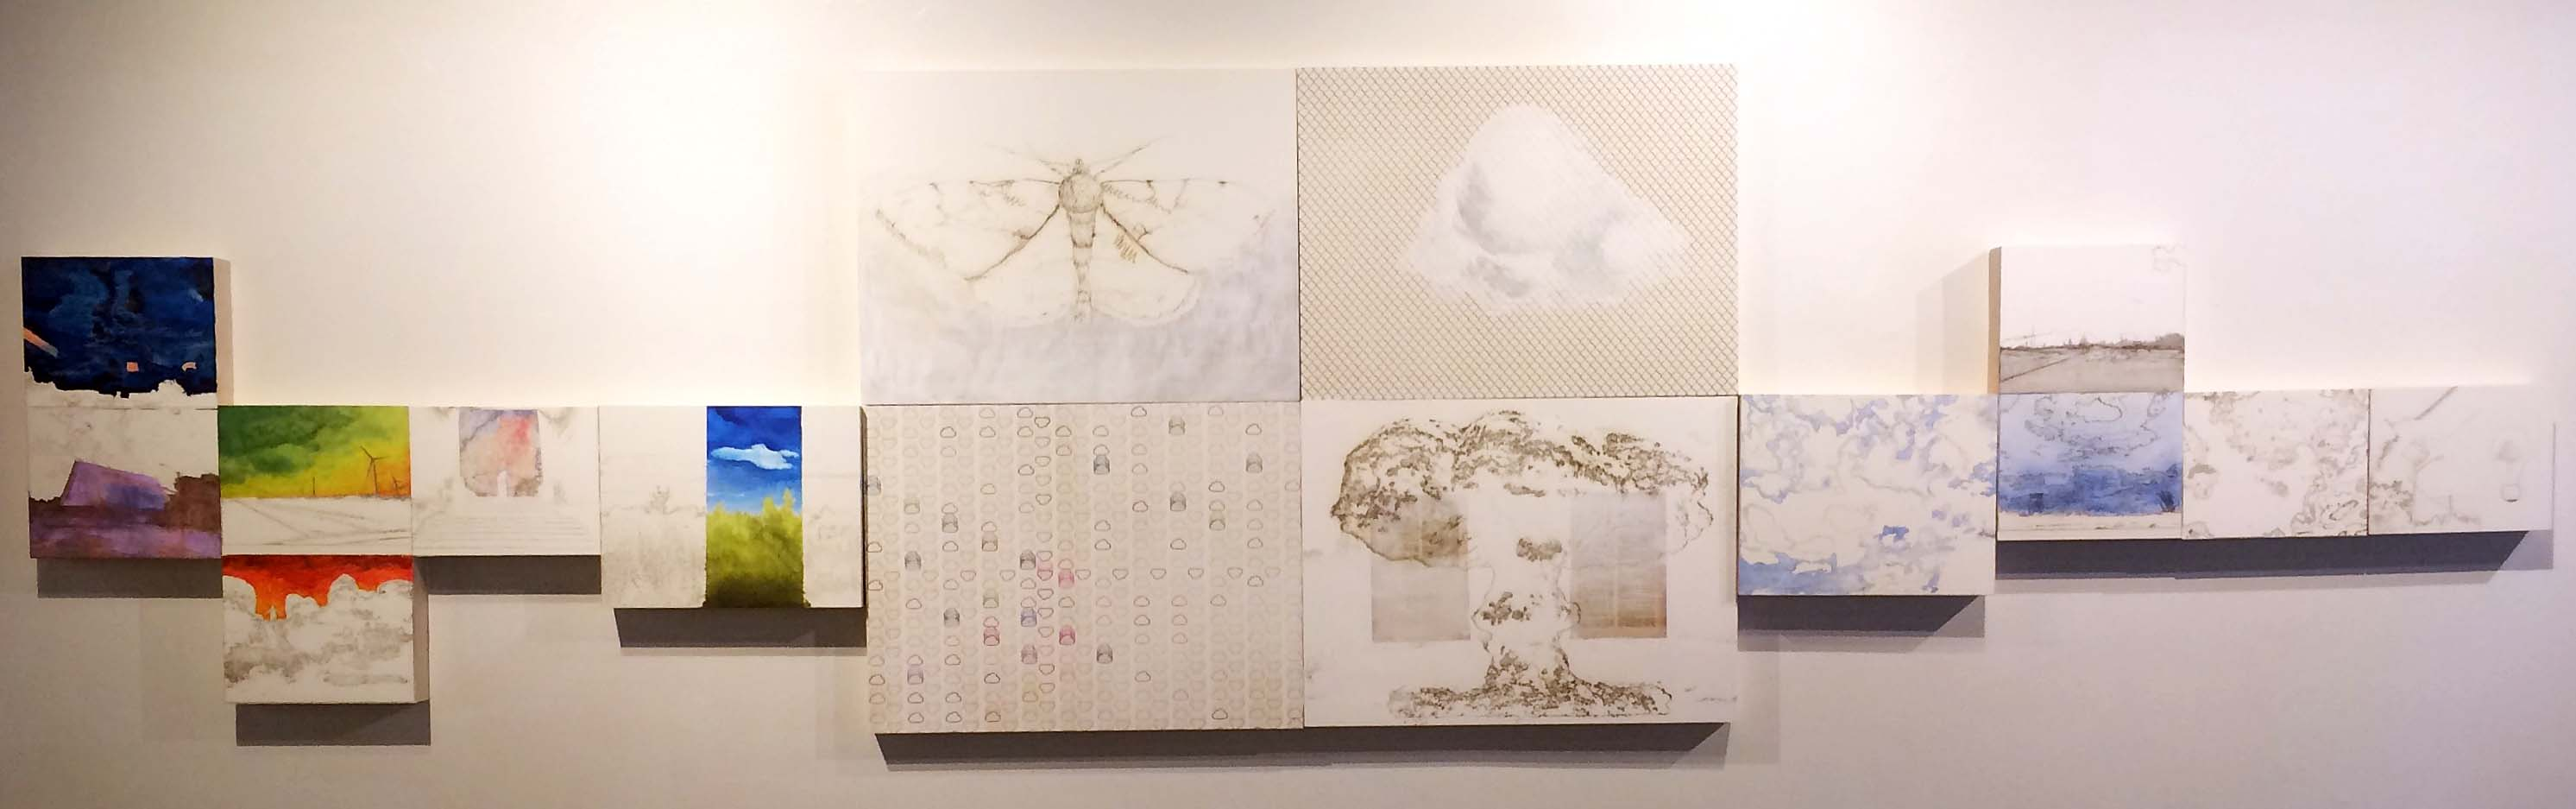 Image 1 Vagner Whitehead Computing Clouds 2015 Laser etching collage and acrylic on panel